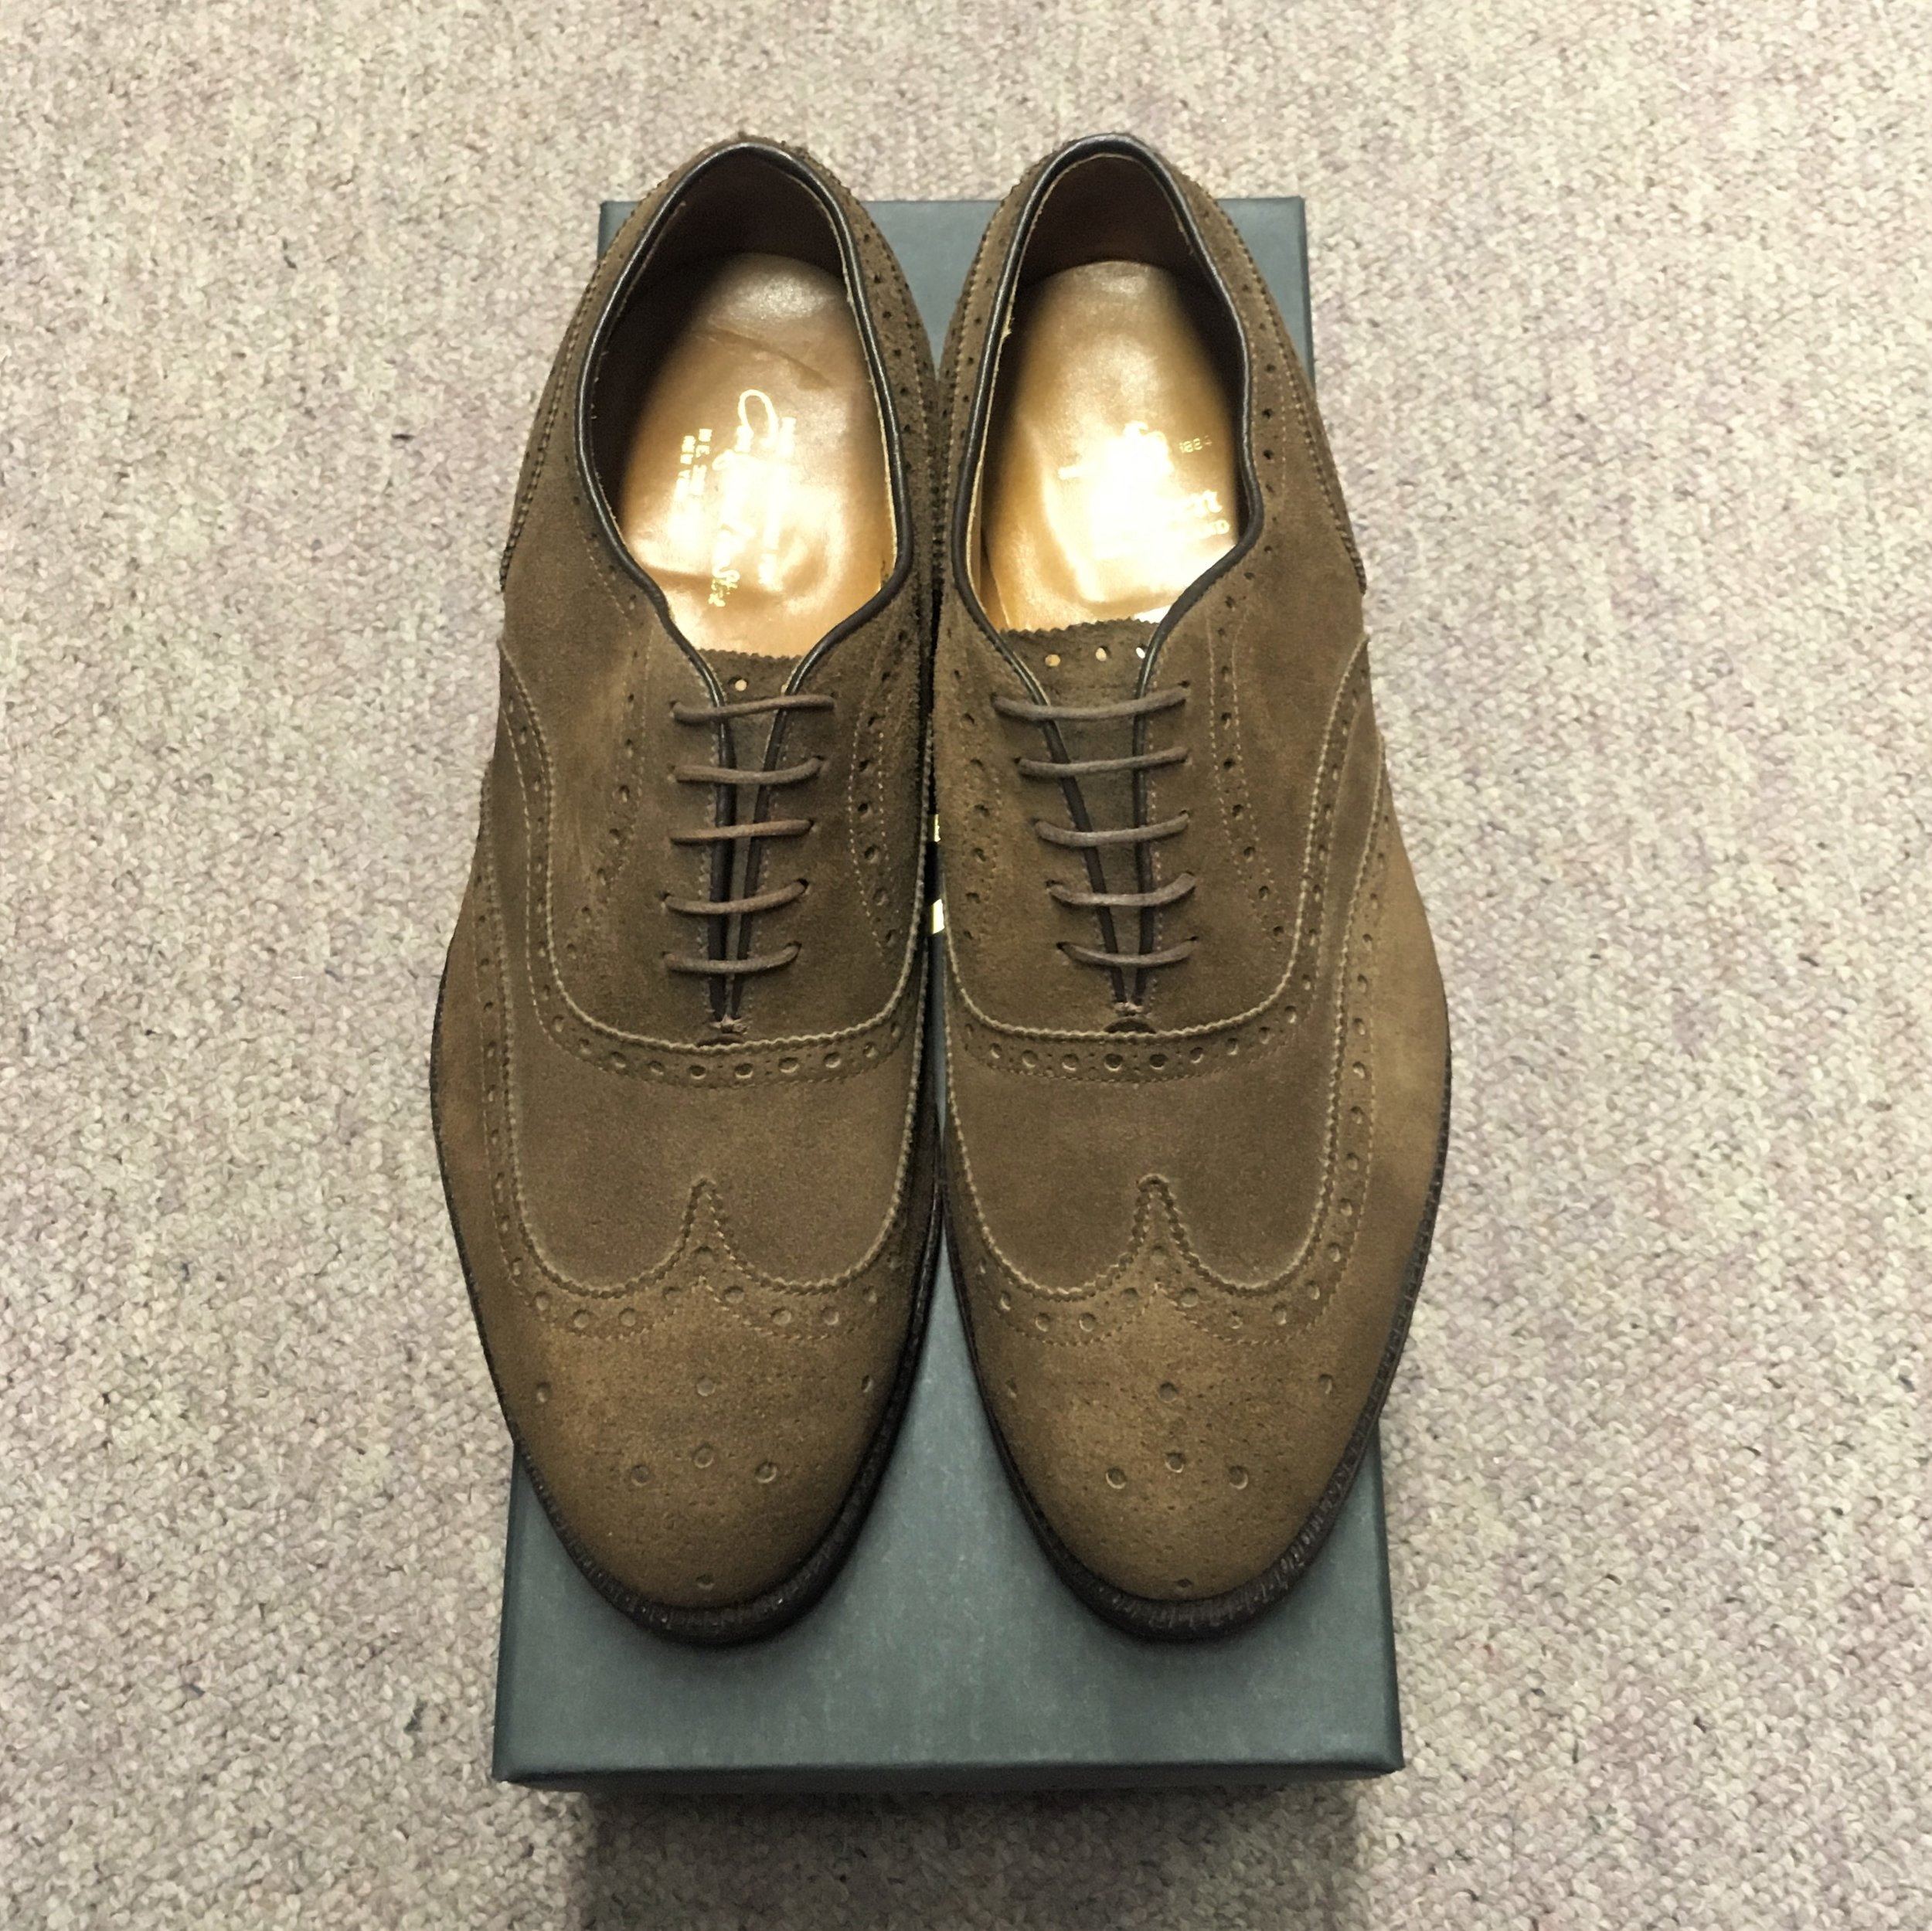 #904 - Hampton LastBrown Suede - Wing Tip Balmoral - Leather SoleDiscontinued ModelLAST PAIRS SIZES 8EEE & 10EEEMSRP $569Contact us for Pricing and Availability